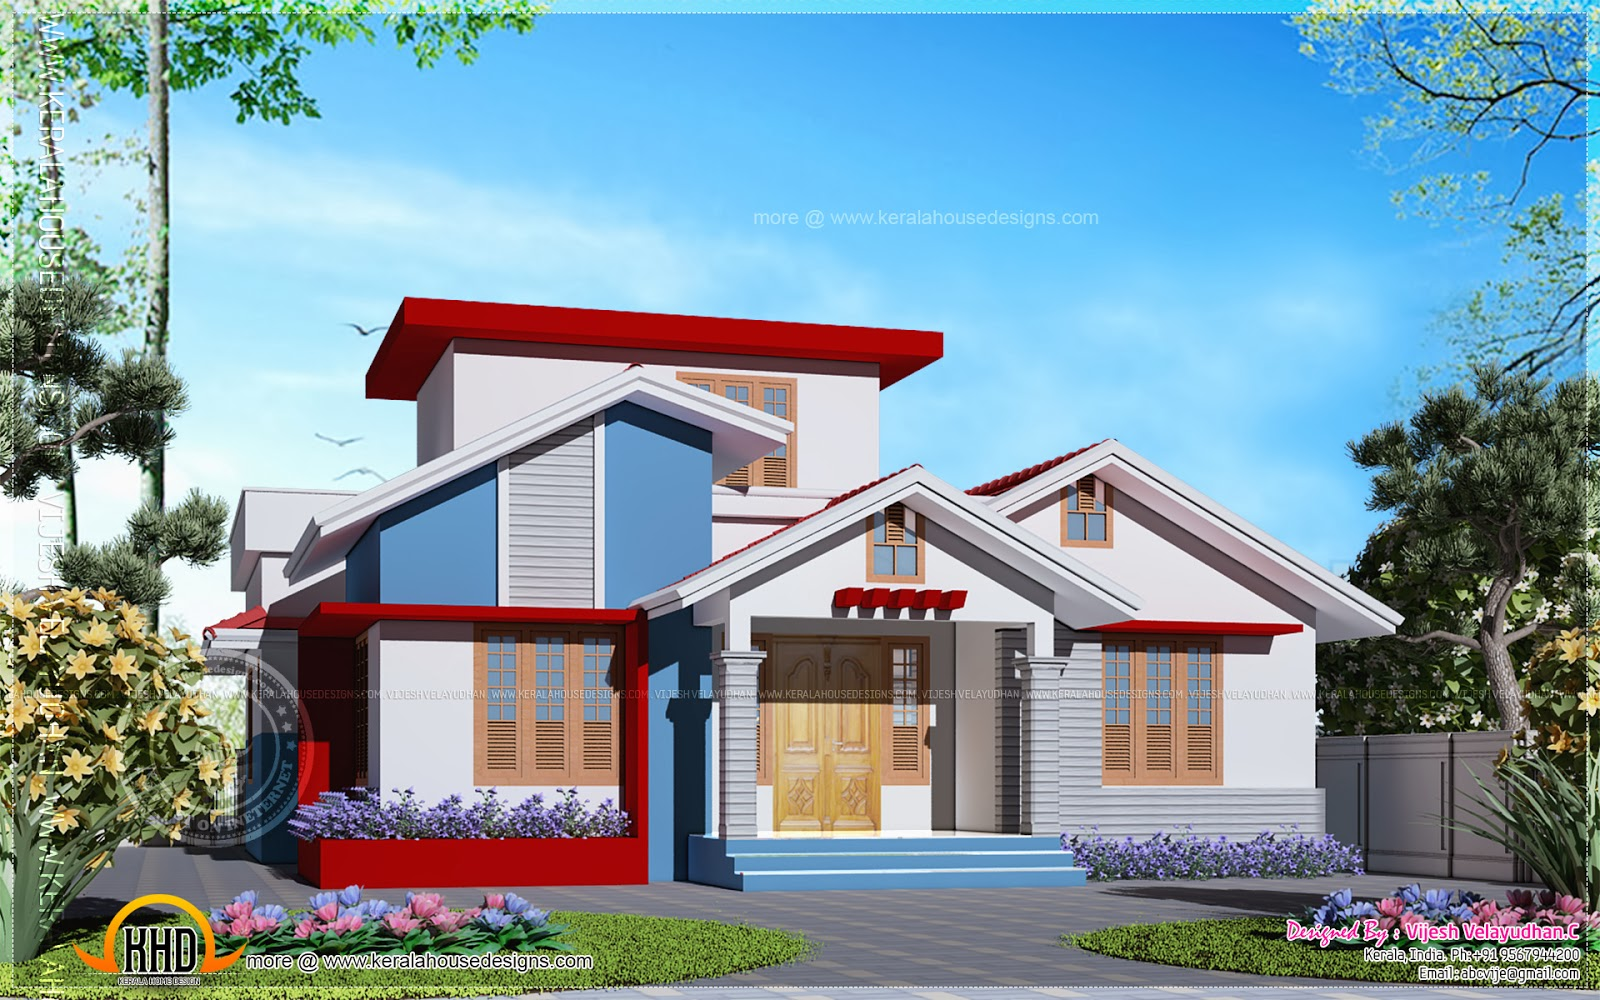 Kerala home design single floor kerala home design and House designs single floor